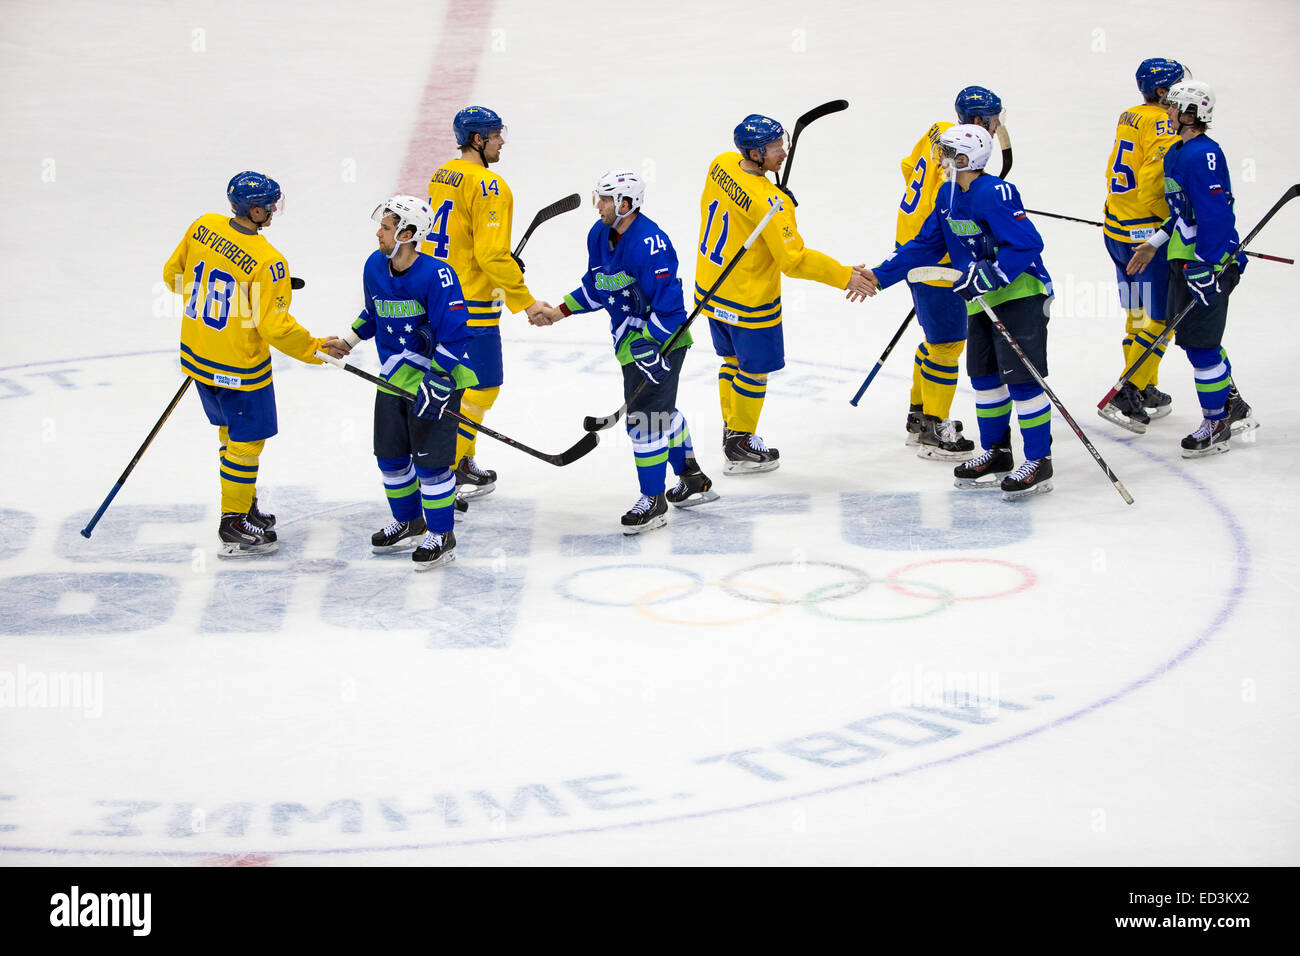 Team handshake at end of Sweden vs Slovenia game at the Olympic Winter Games, Sochi 2014 - Stock Image